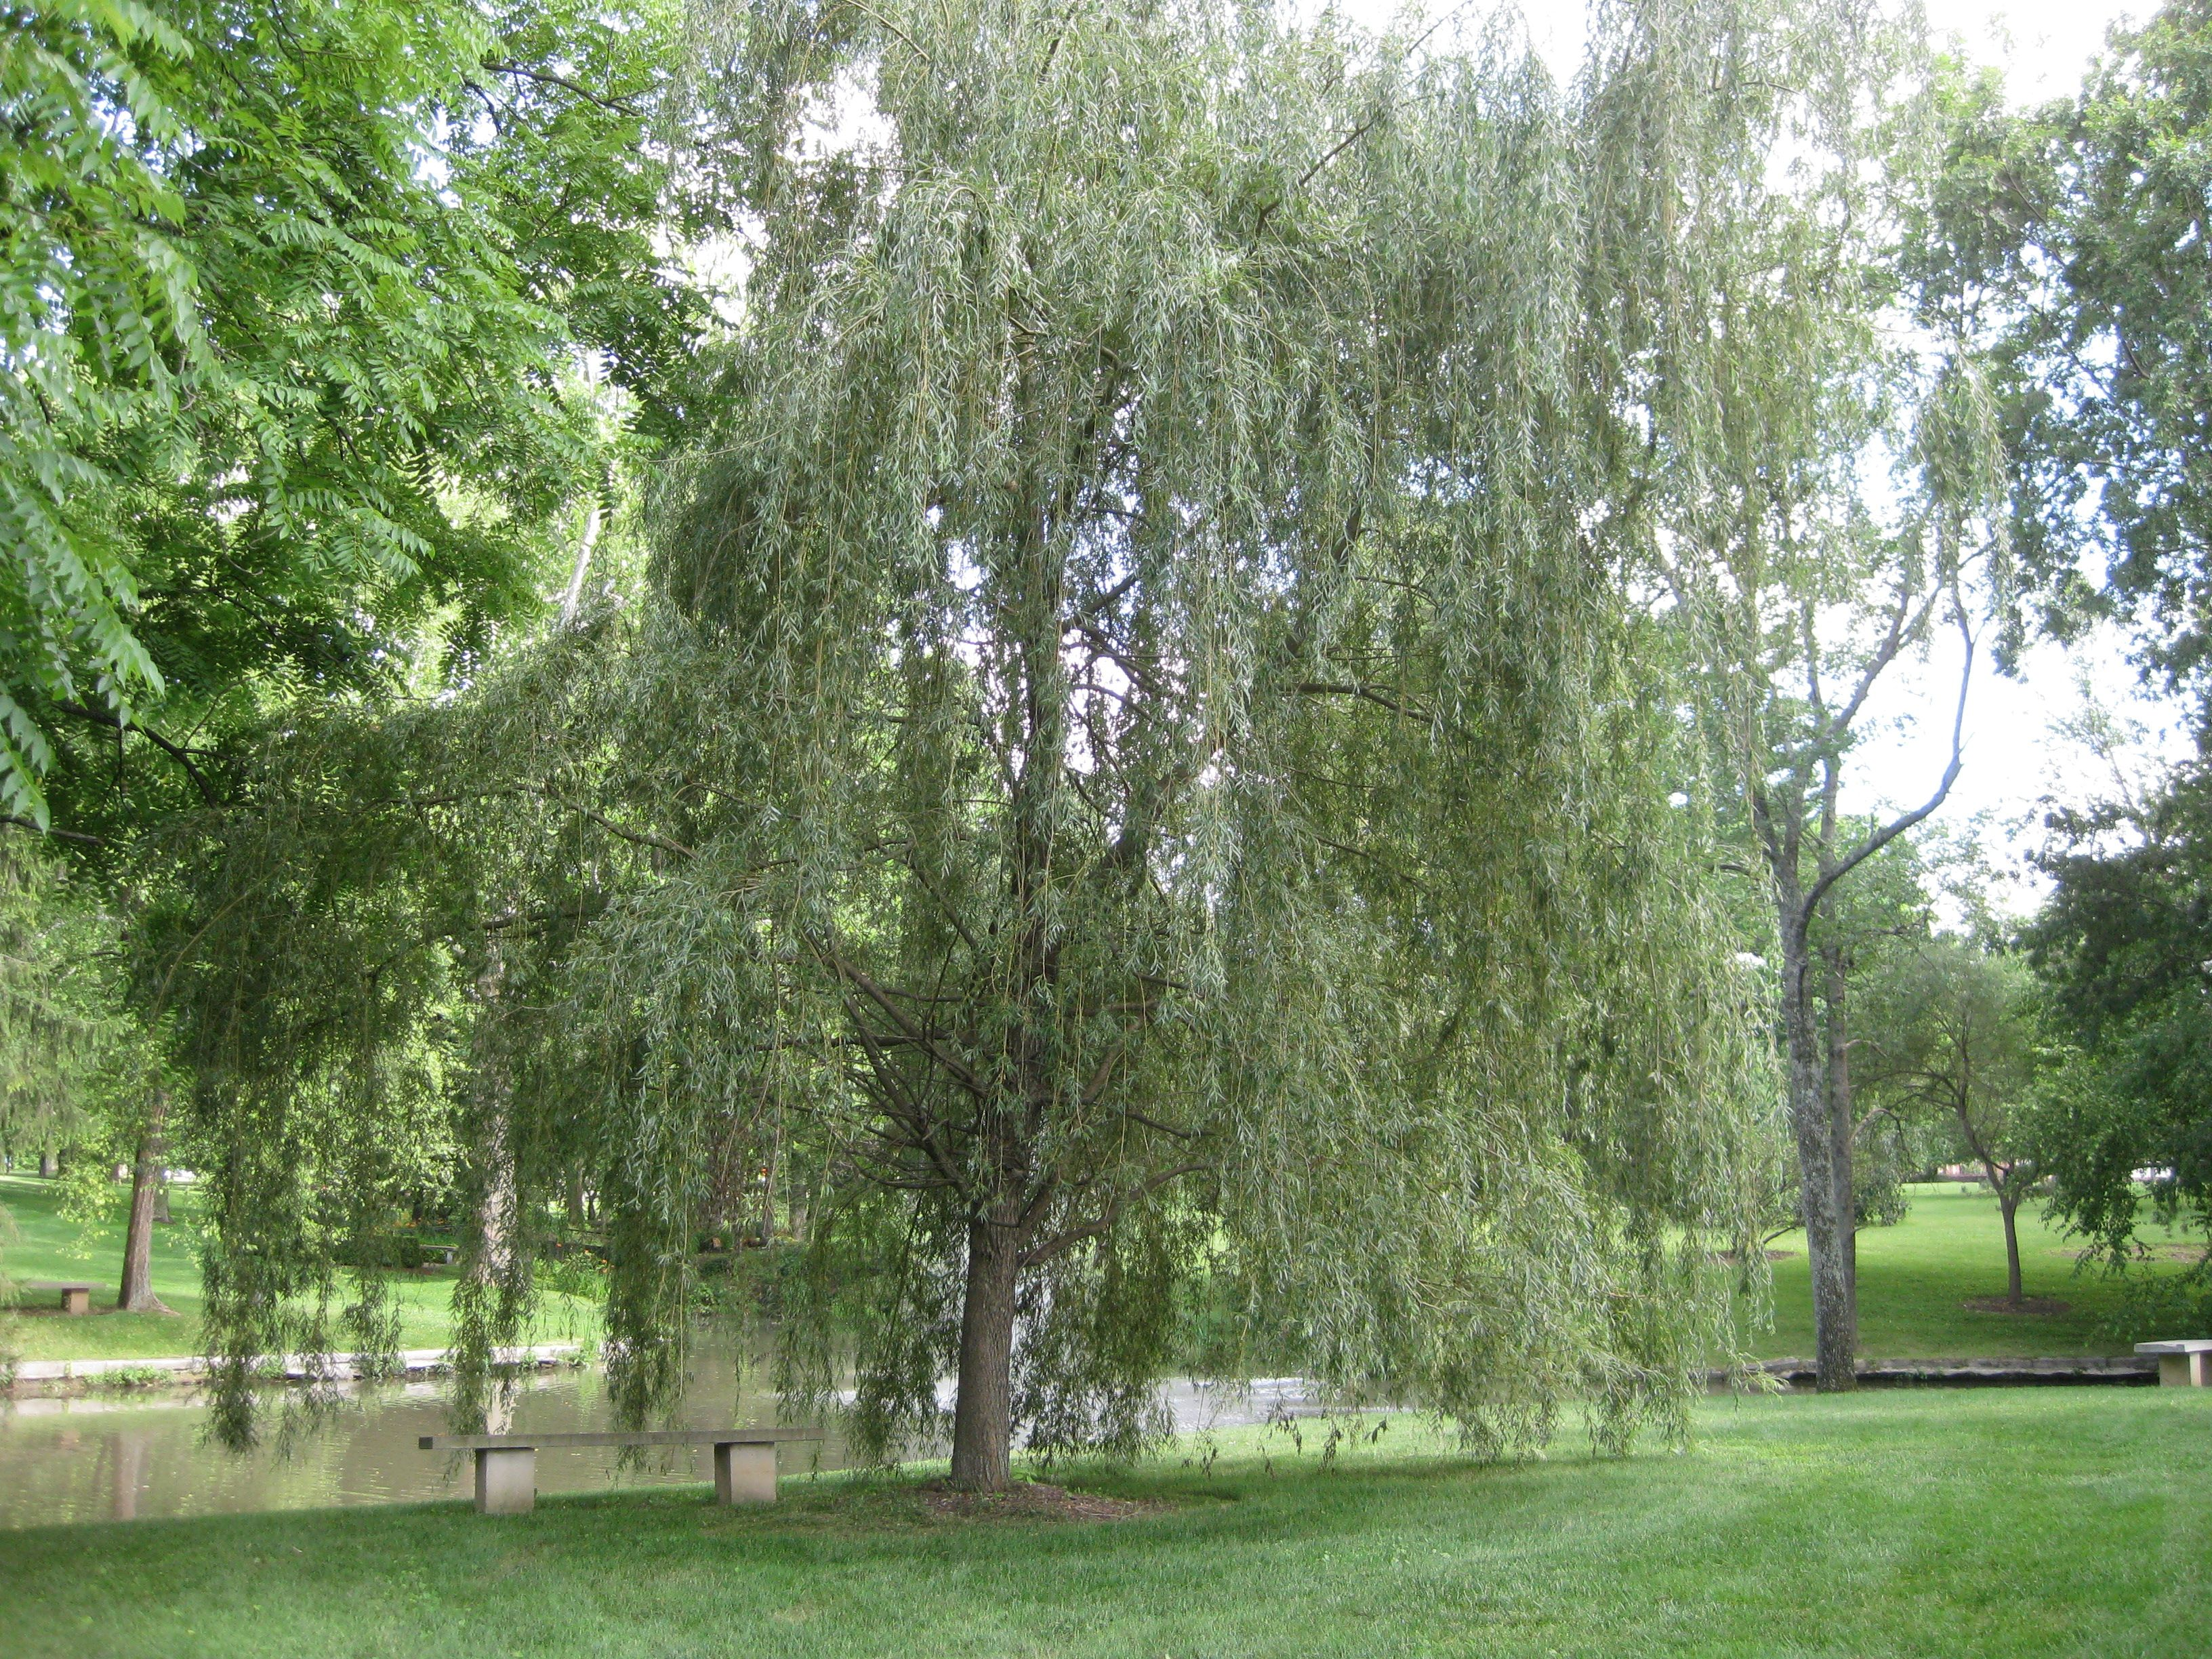 weeping willow tree......getting spanked with a switch!